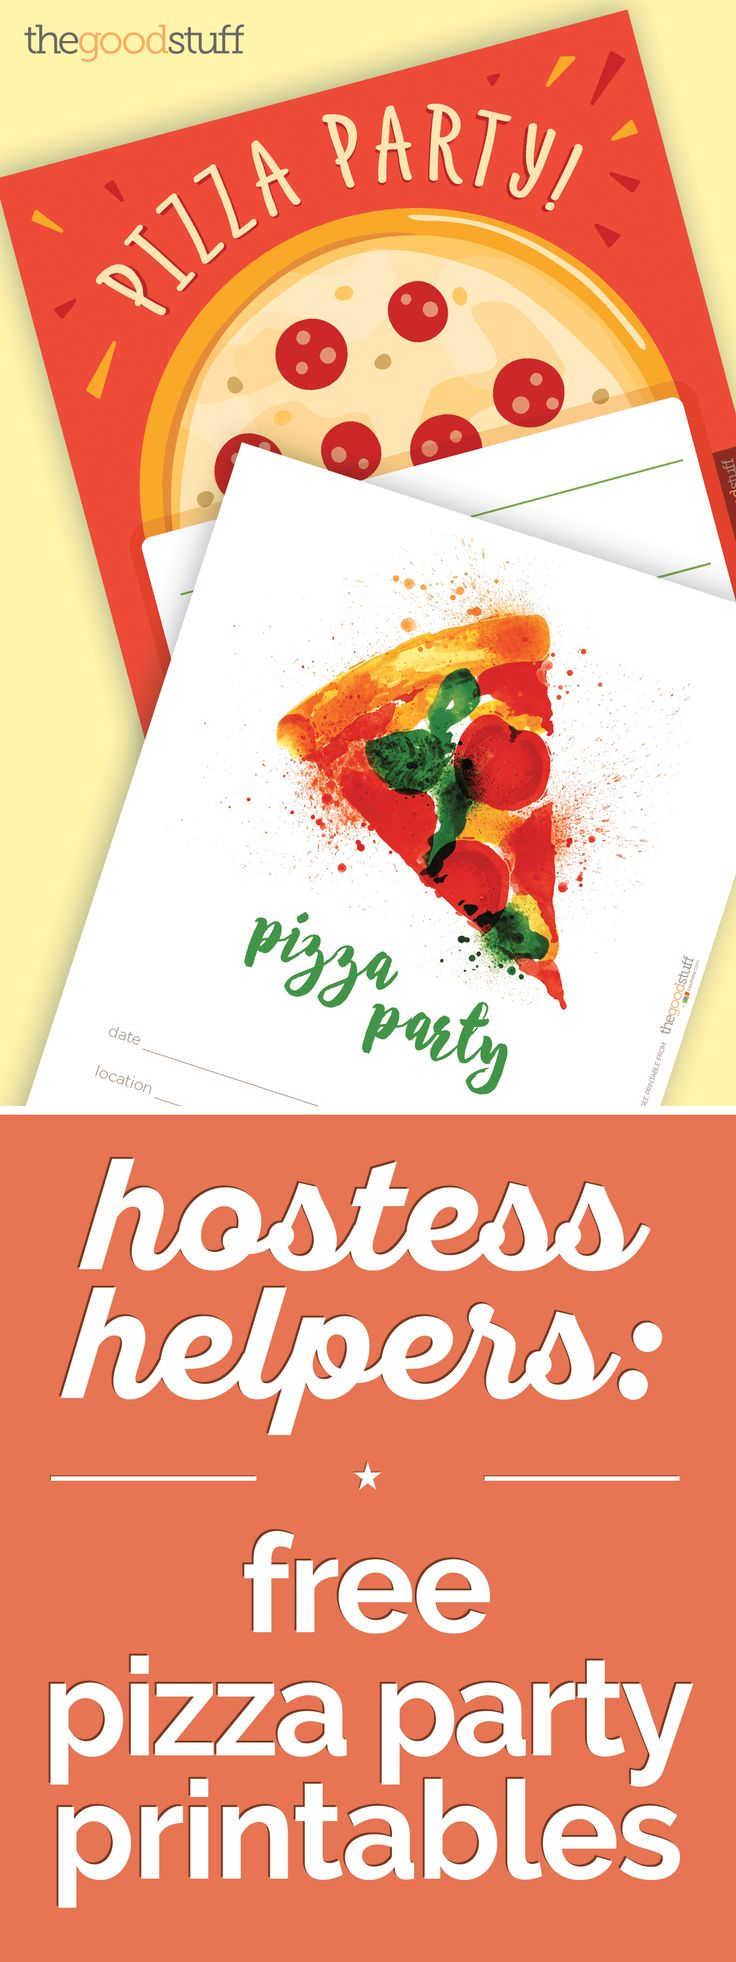 Hostess Helpers: Free Pizza Party Printables | thegoodstuff